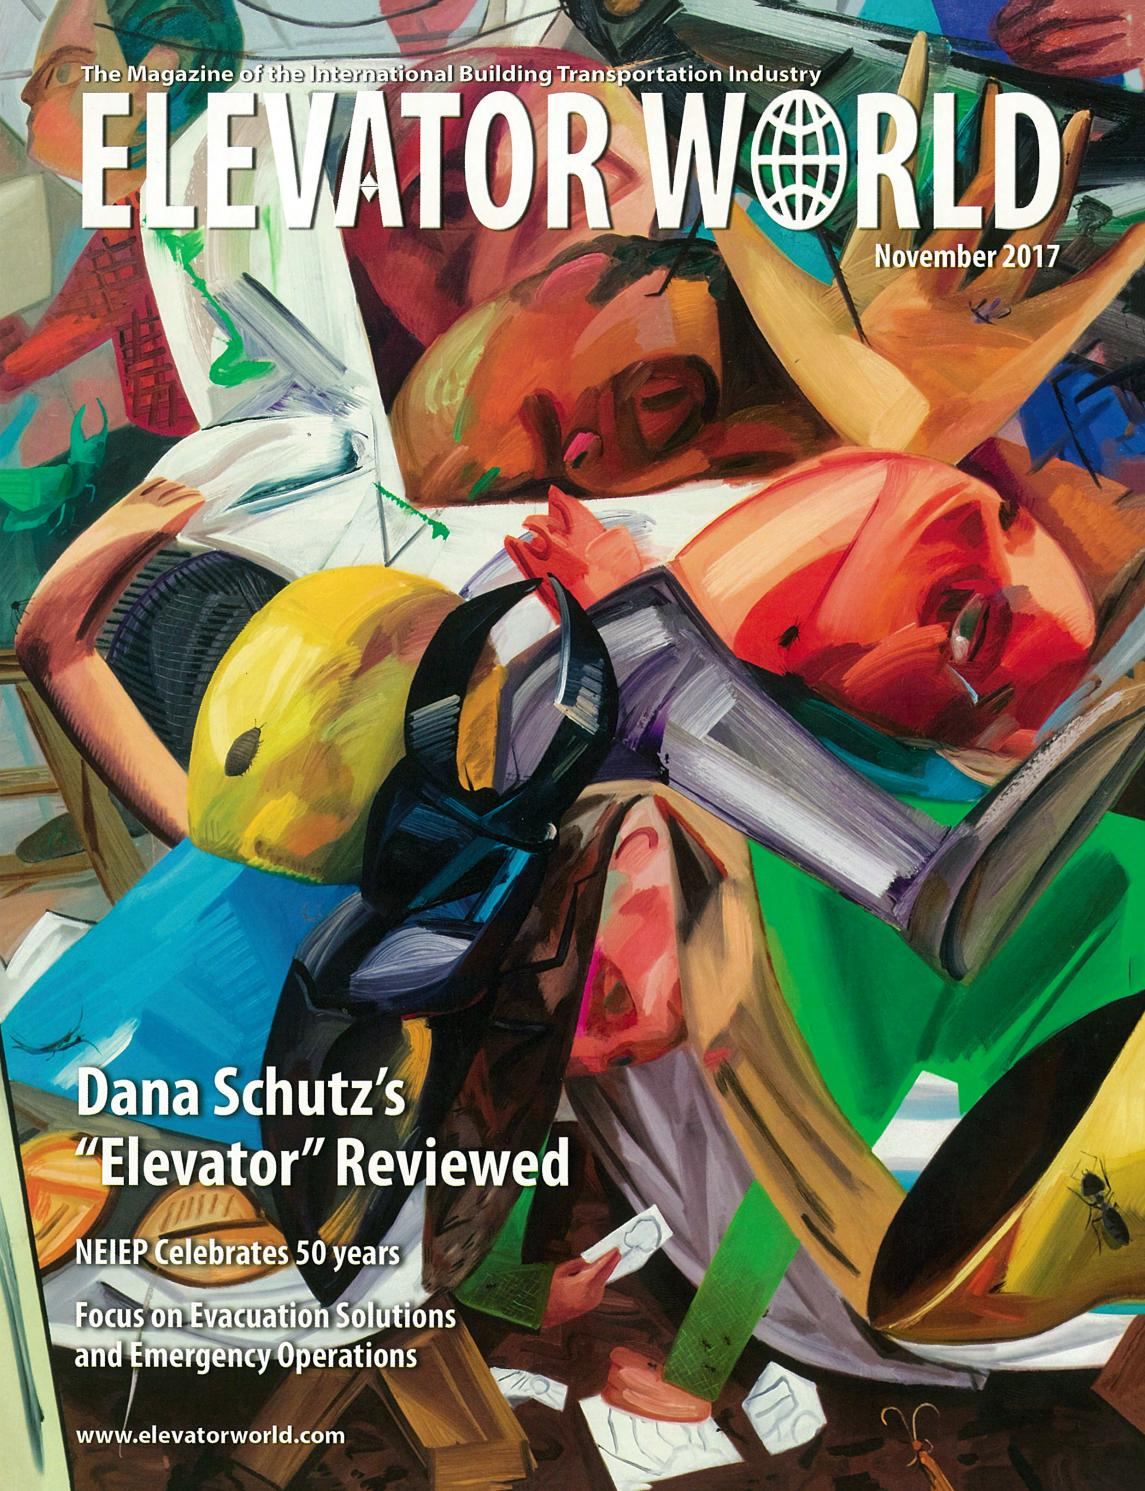 ELEVATOR WORLD | November 2017 by Elevator World - issuu on